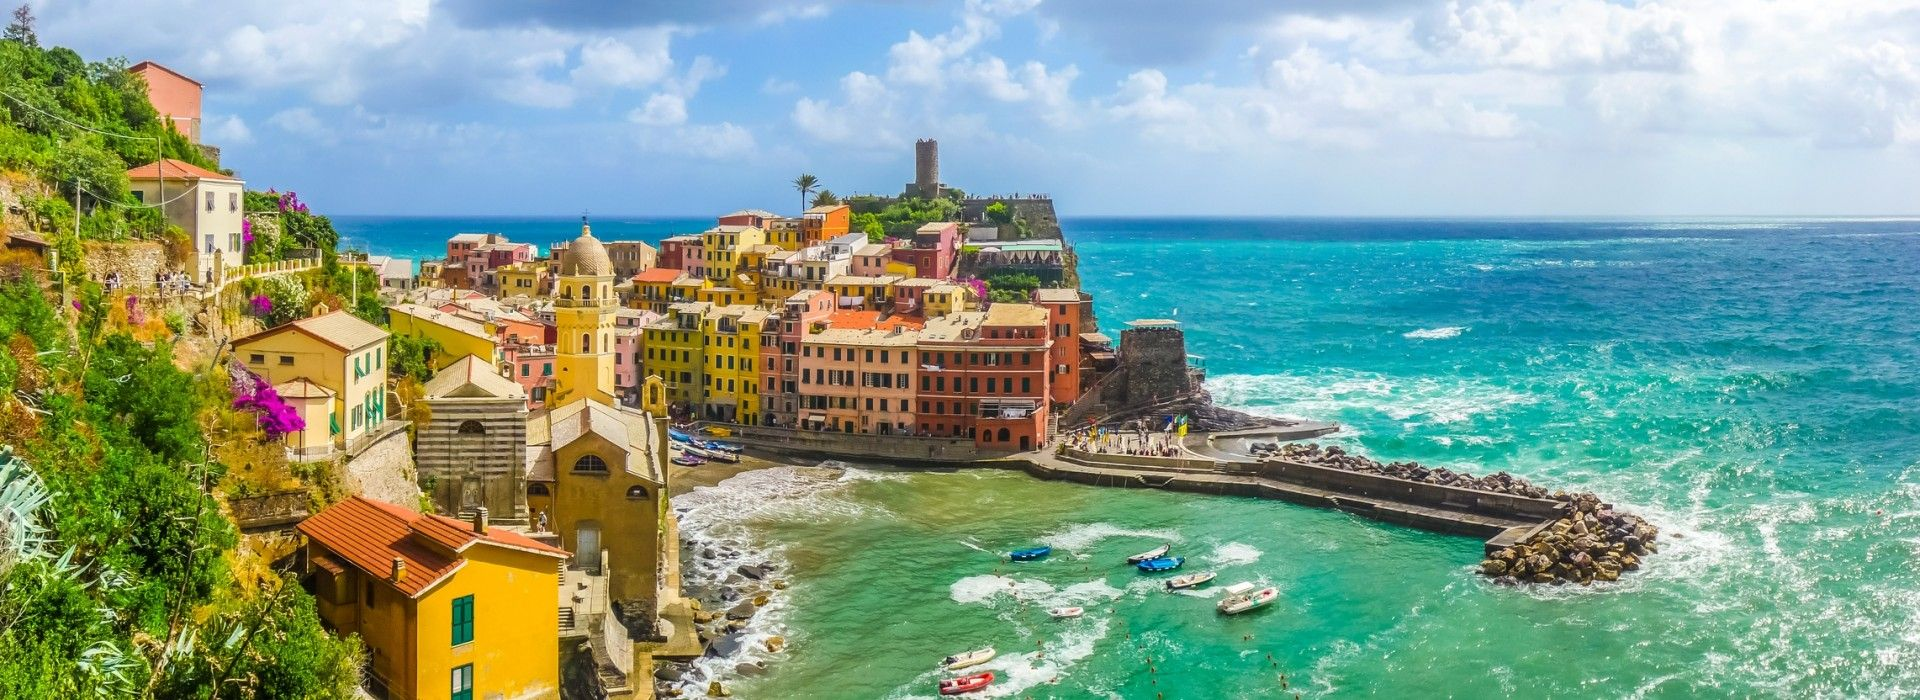 National parks Tours in Italy